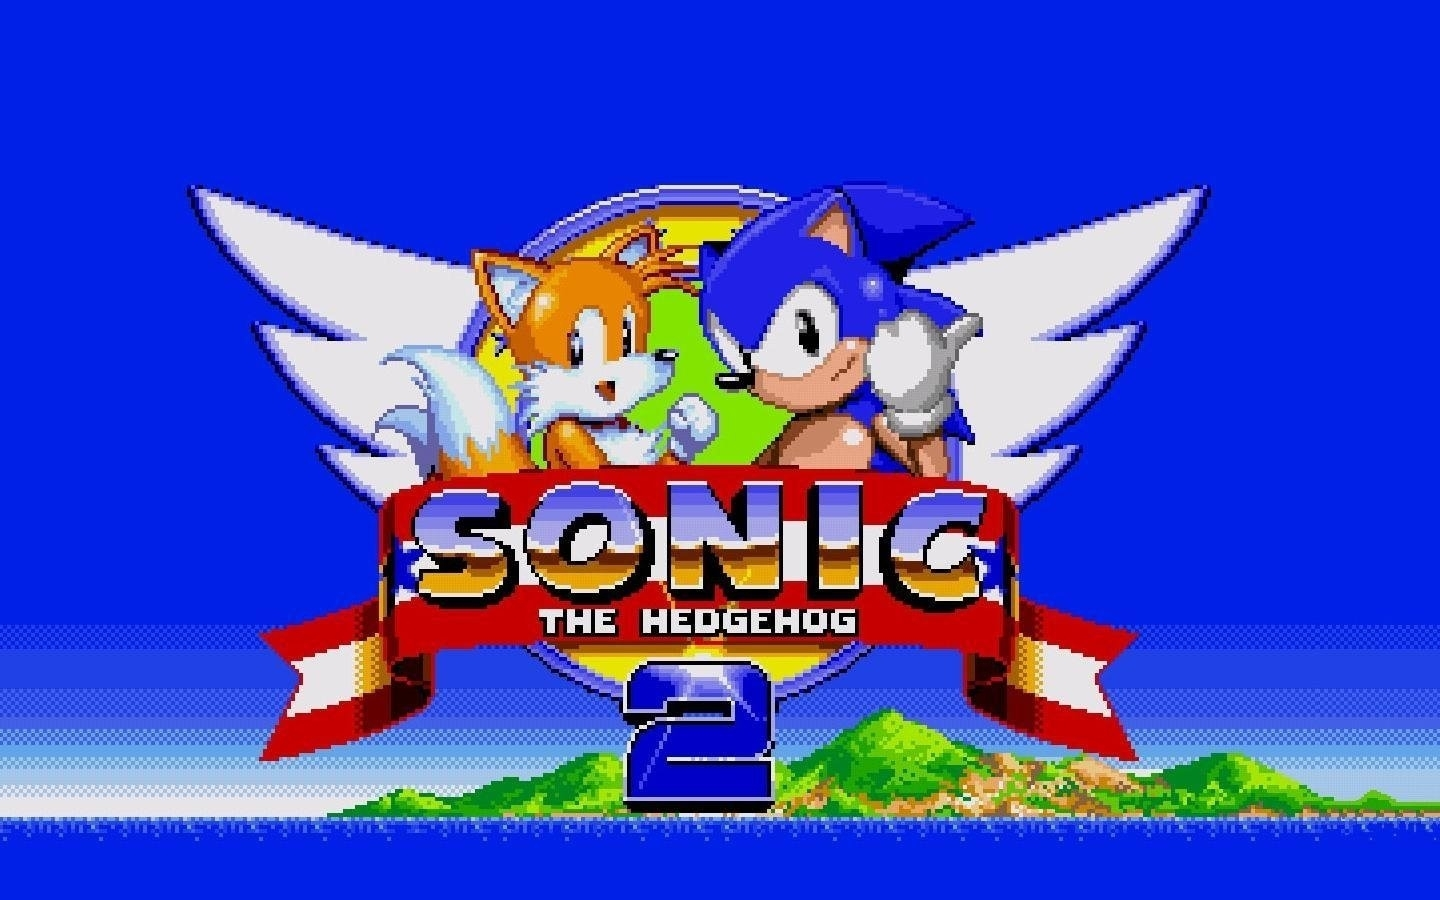 6 sonic the hedgehog 2 hd wallpapers | background images - wallpaper